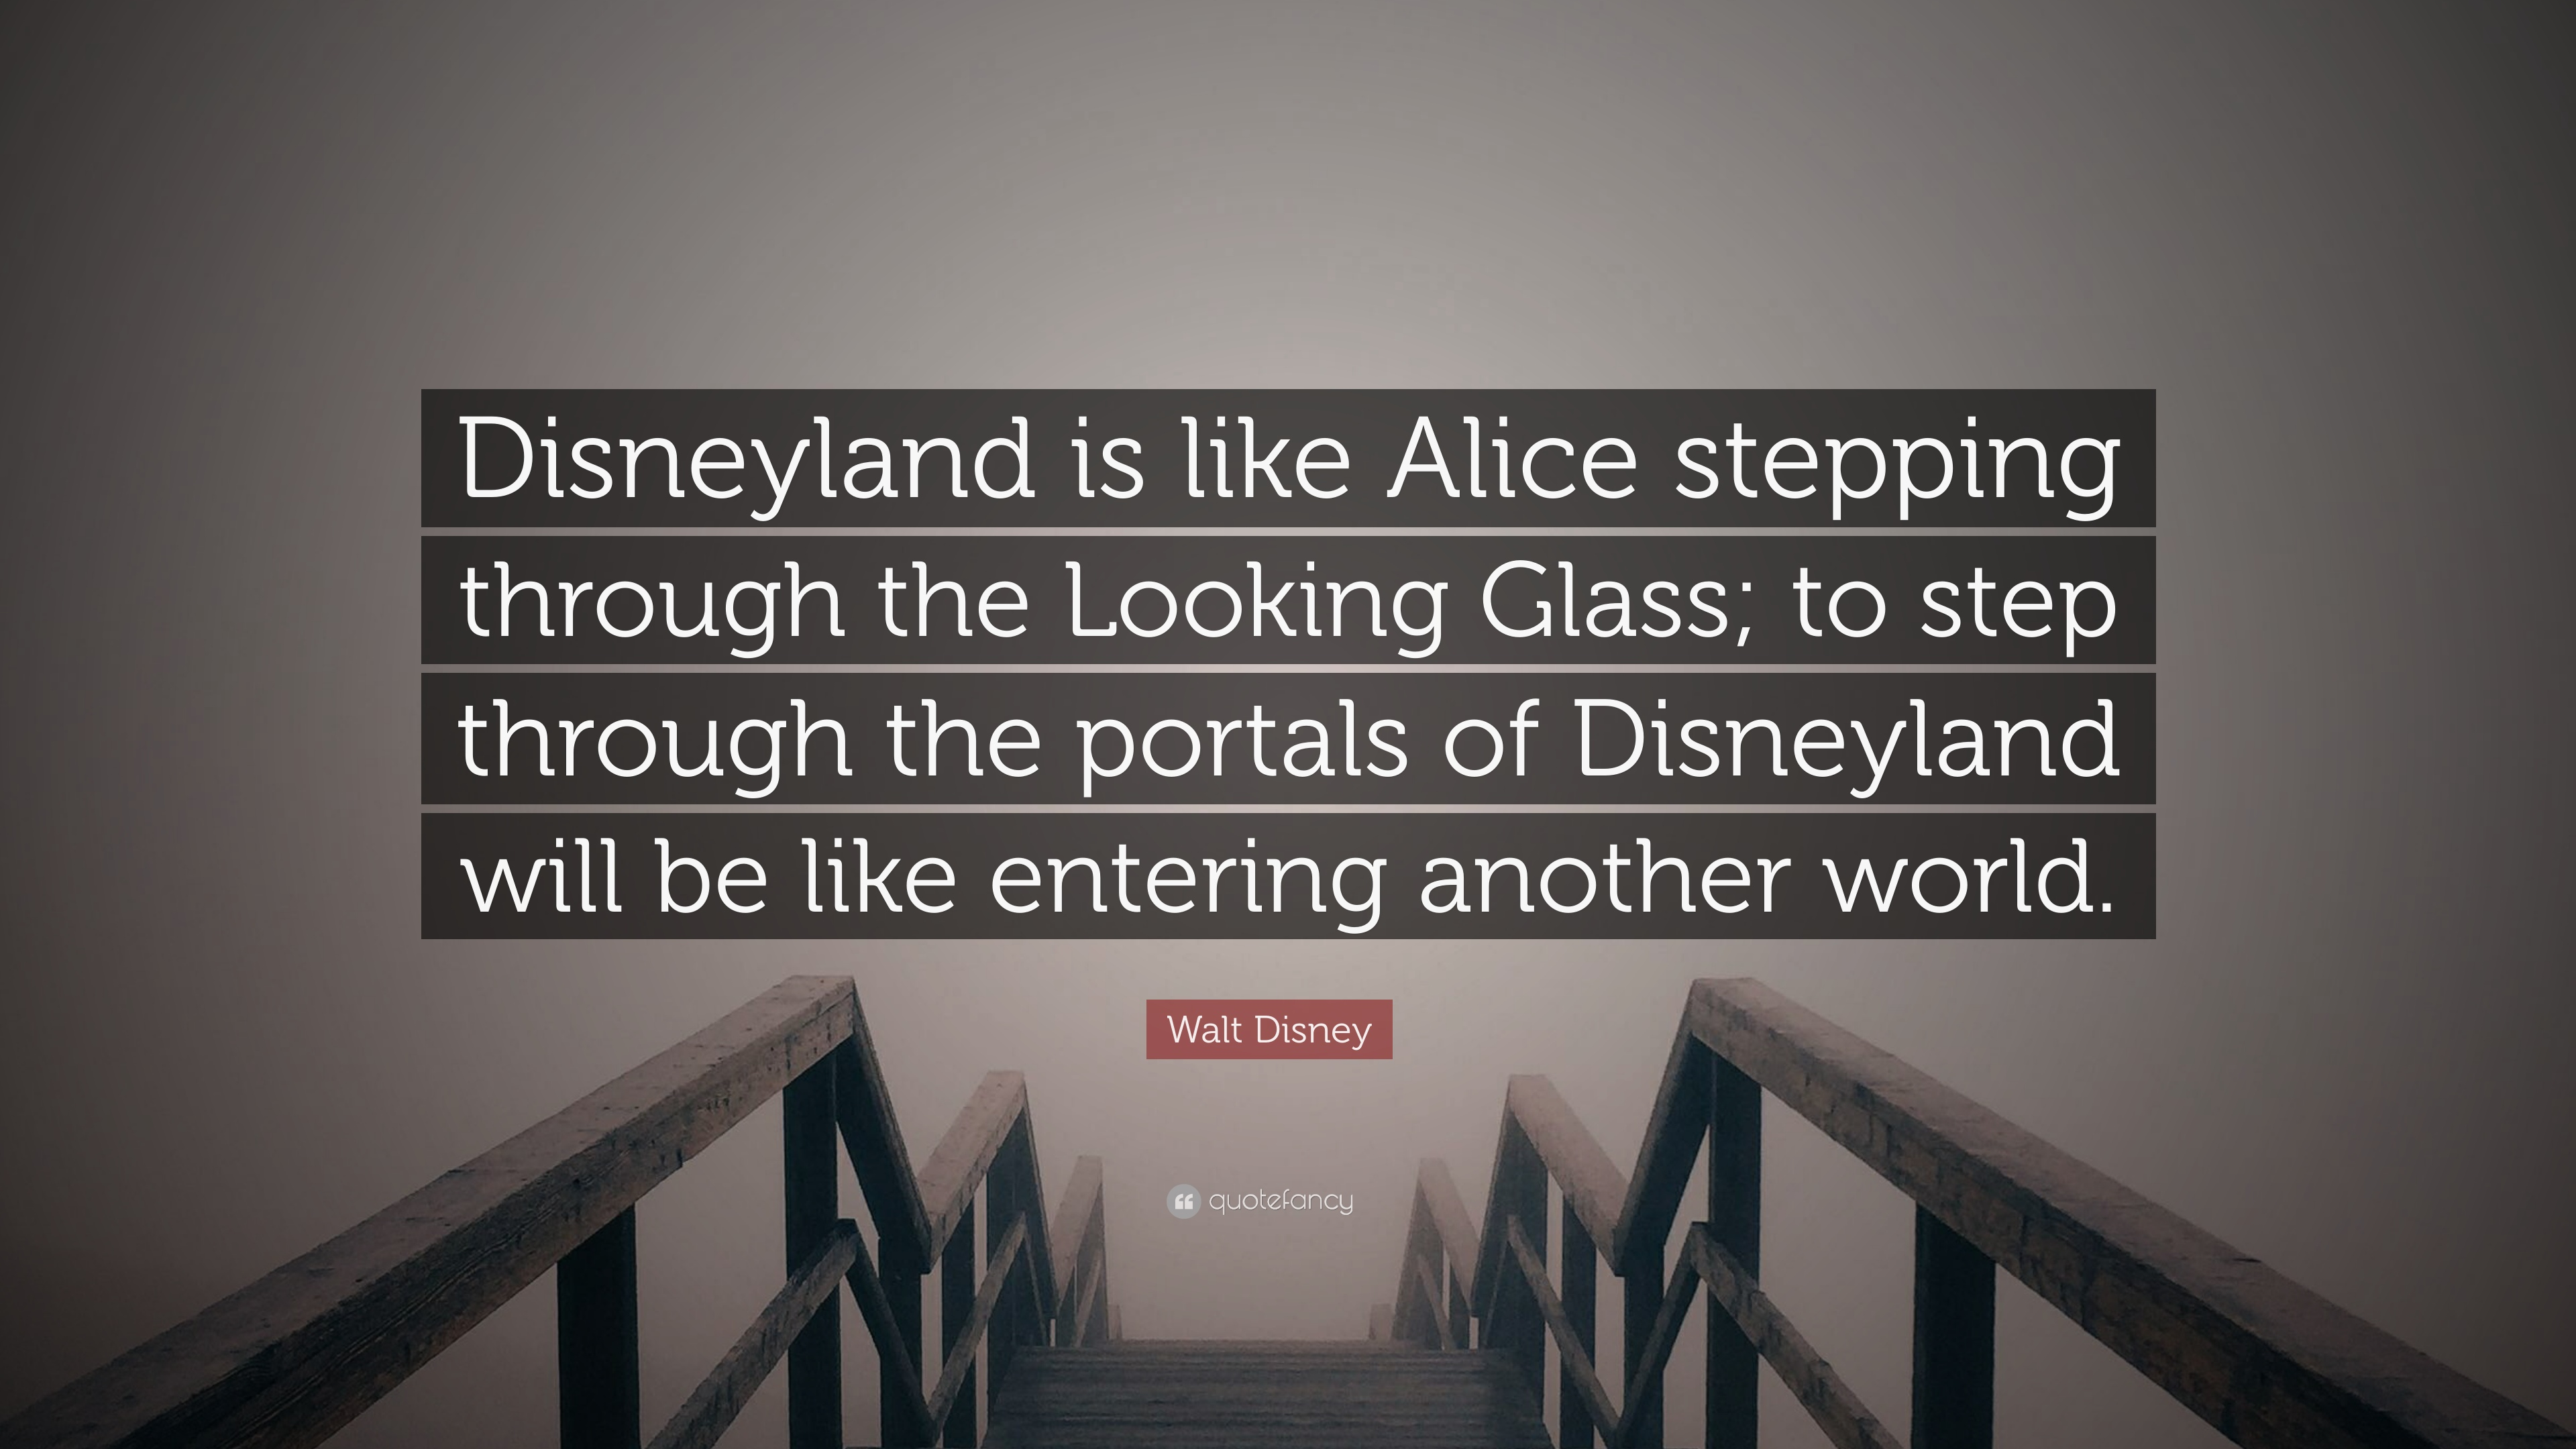 walt disney quote disneyland is like alice stepping through the looking glass to